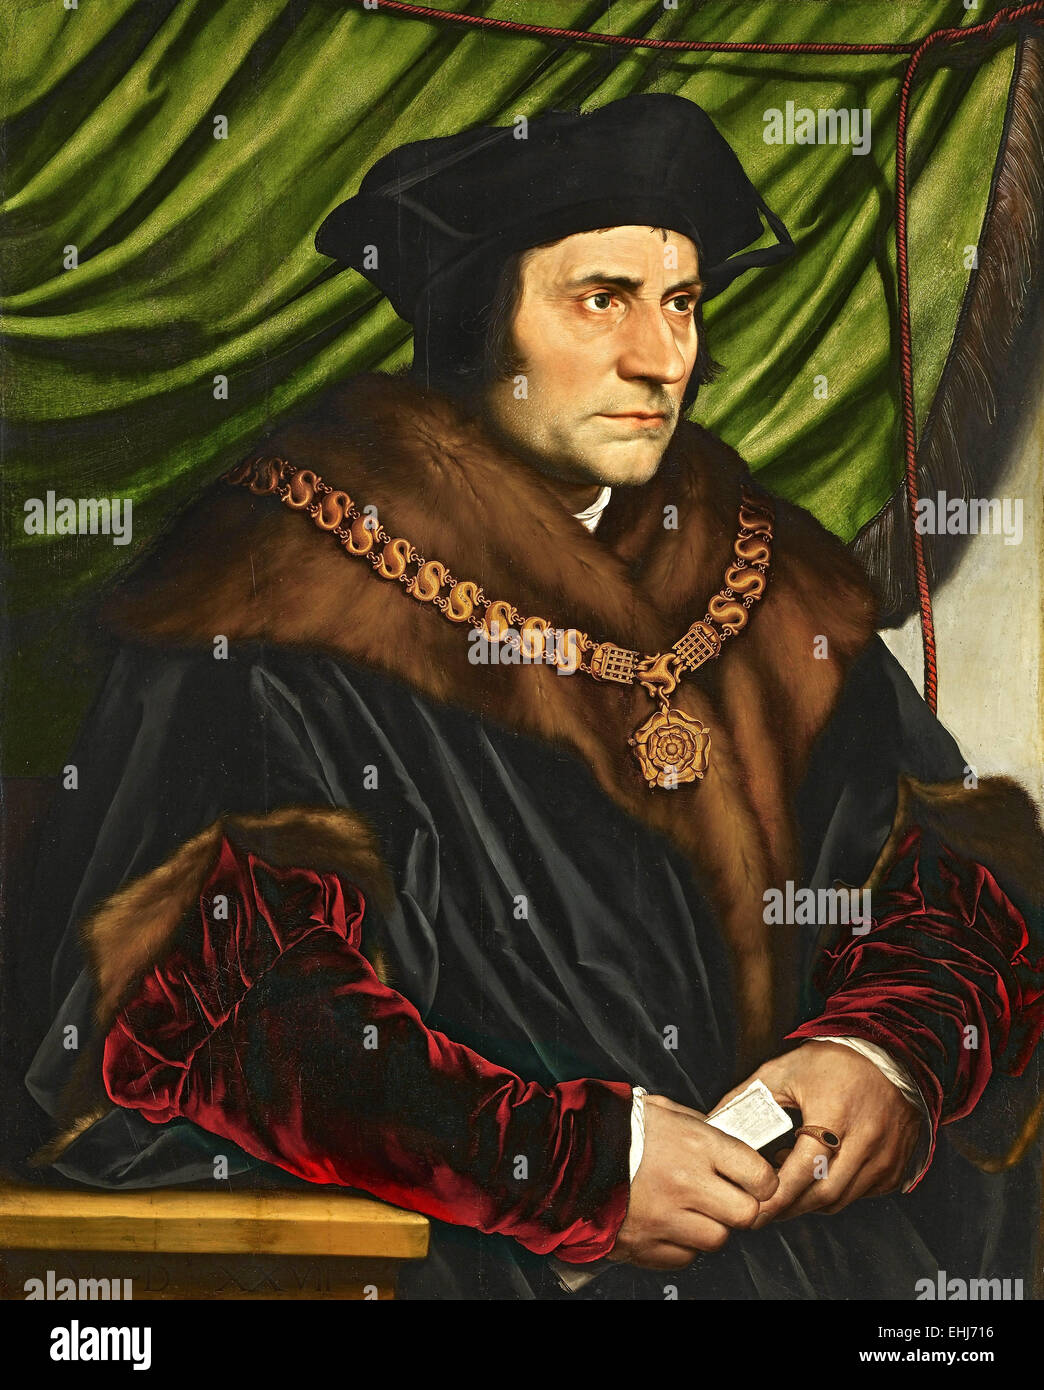 Sir Thomas More, English lawyer, social philosopher, author, statesman and noted Renaissance humanist. - Stock Image